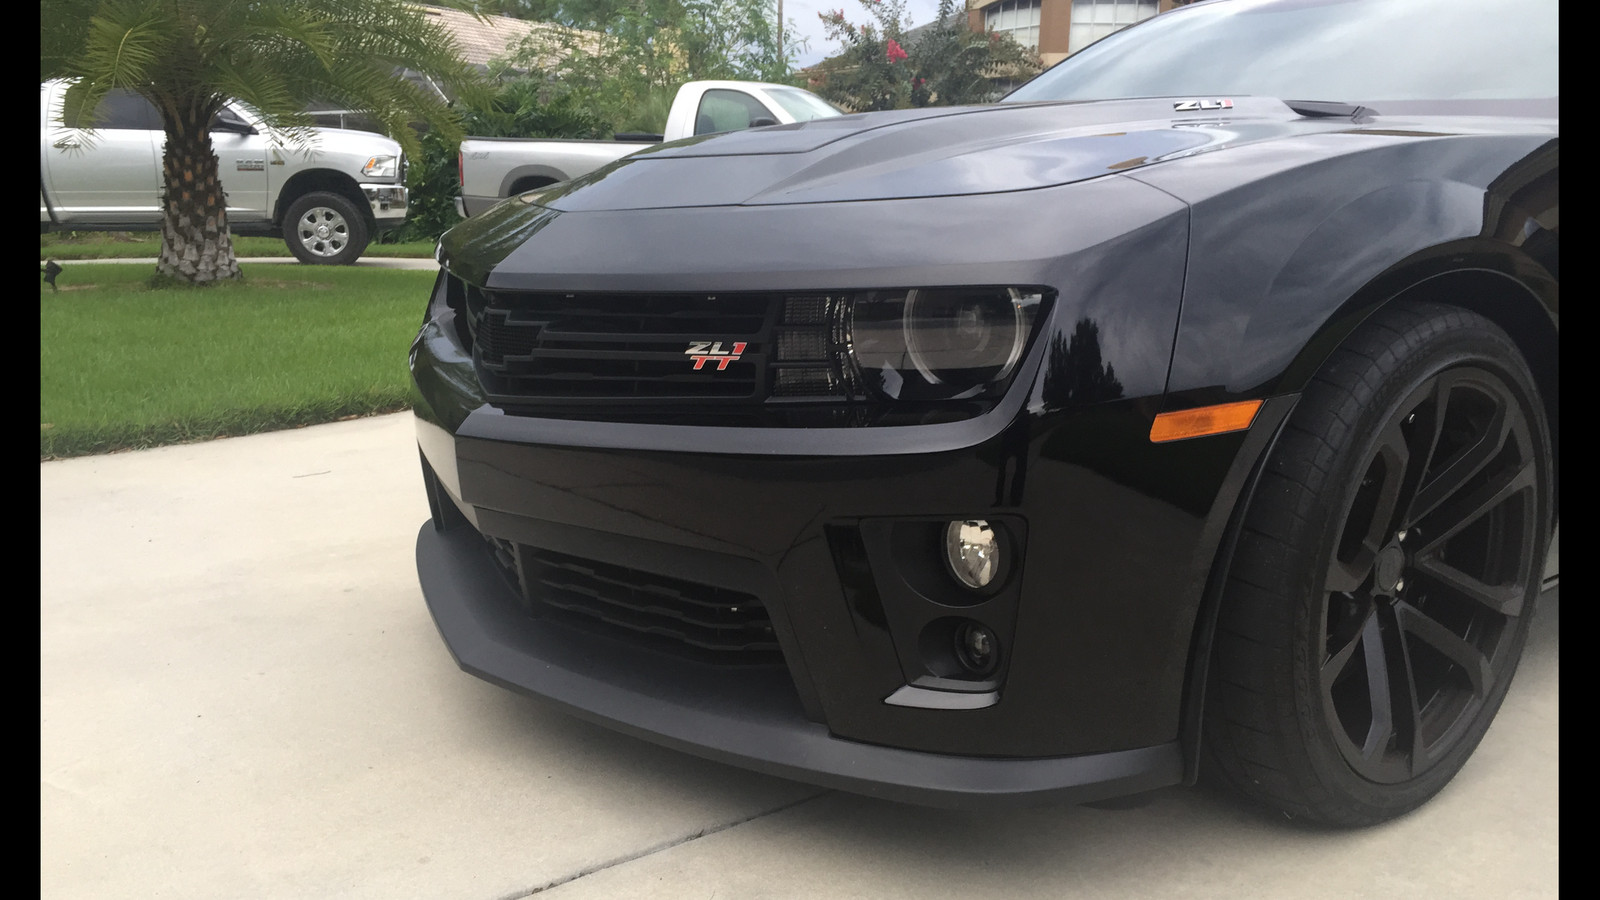 Camaro Zl1 0 60 Html Autos Post